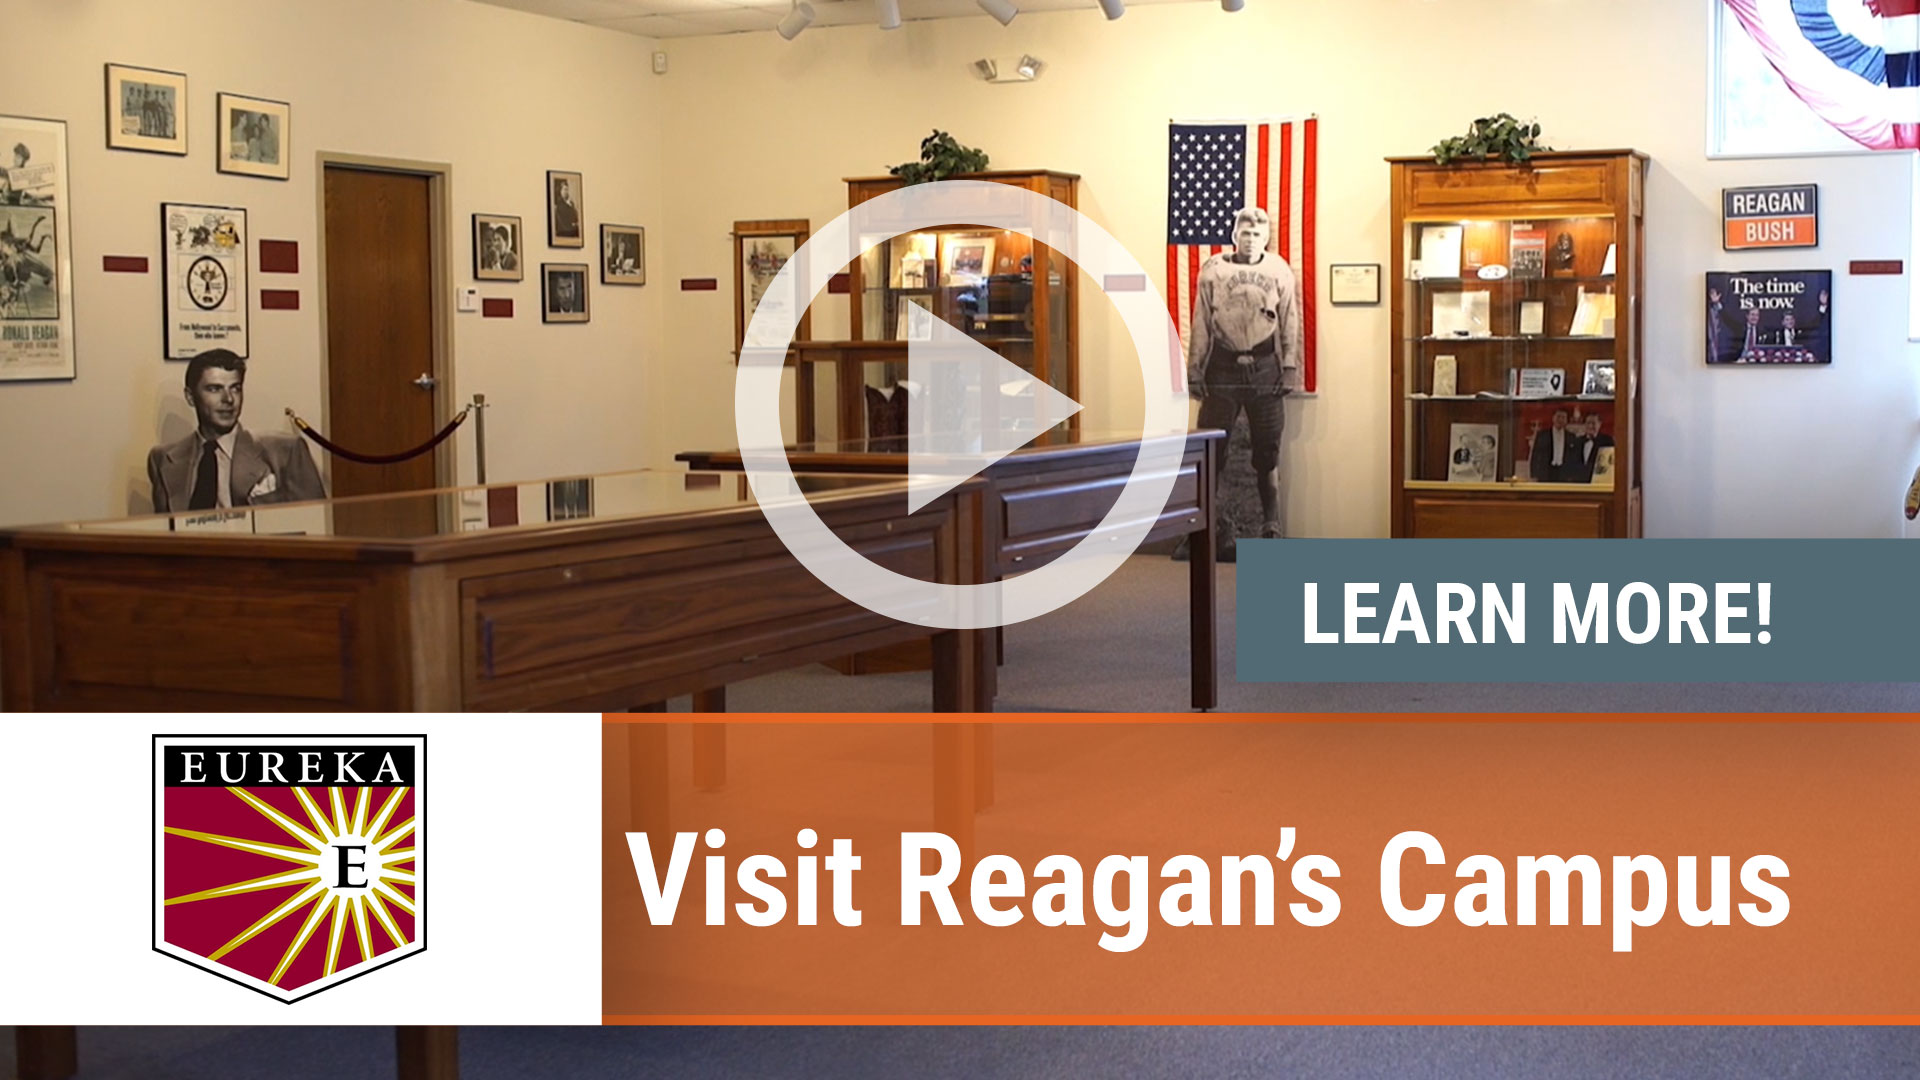 Watch our careers video for available job opening Visit Reagan's Campus in Eureka, IL, USA